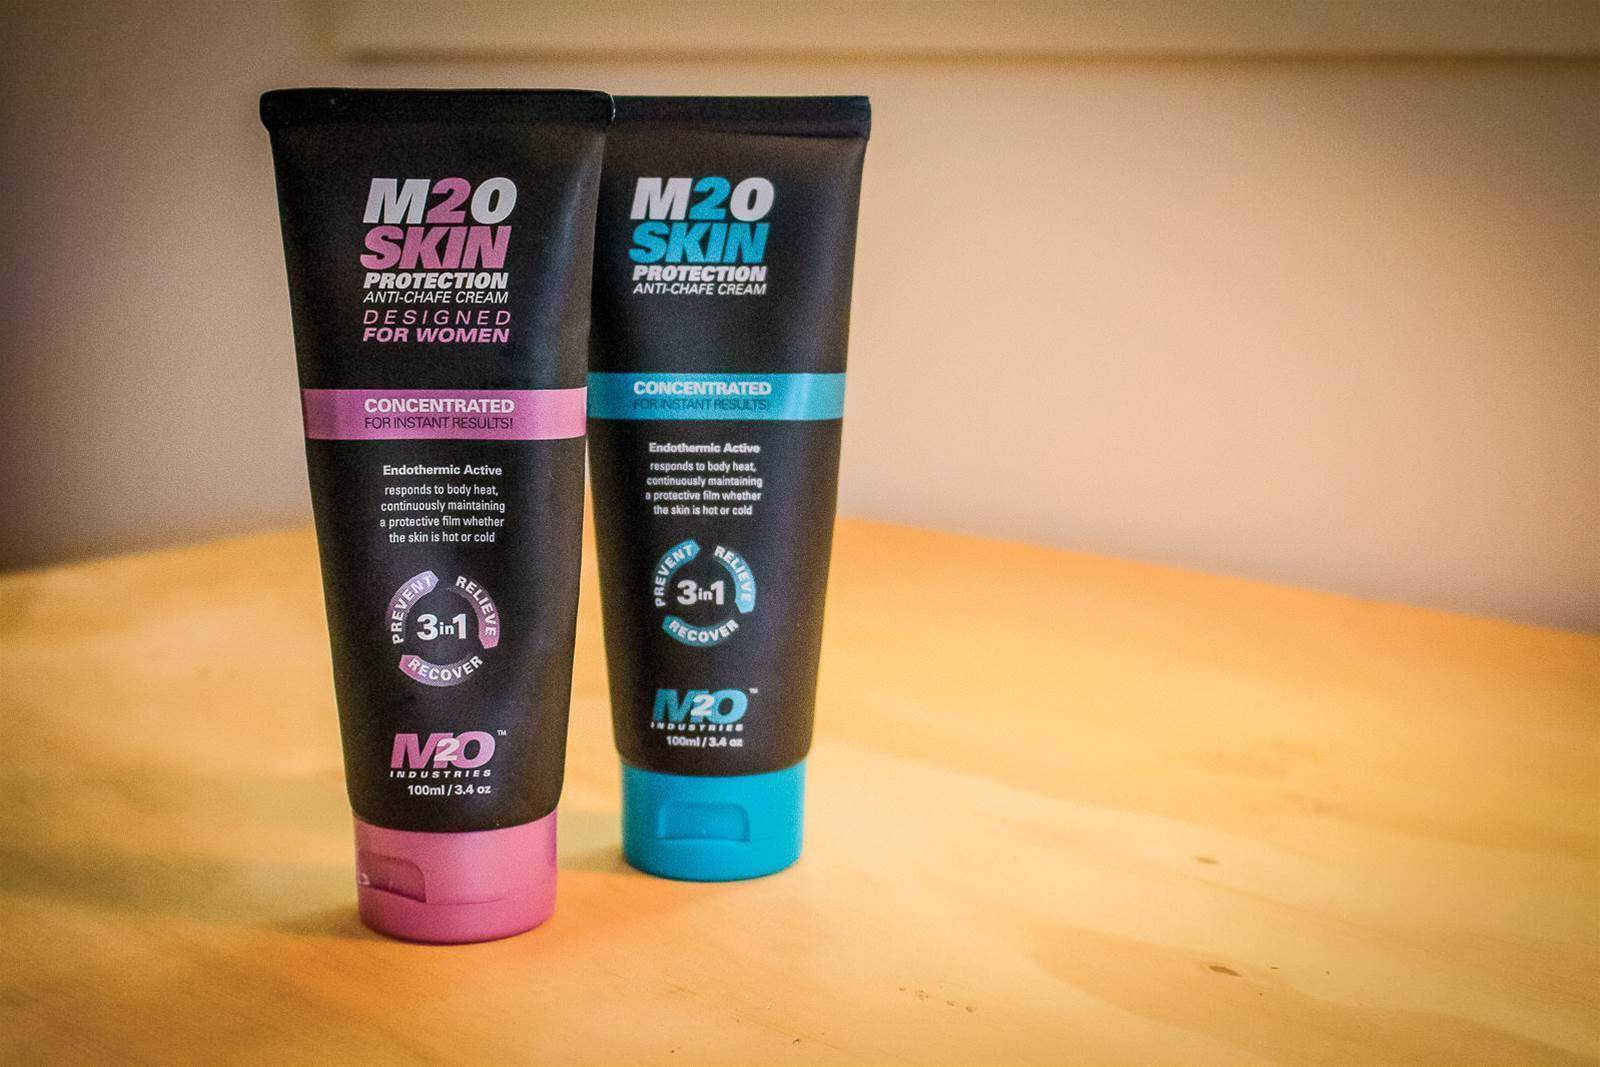 TESTED: M20 Skin Protection